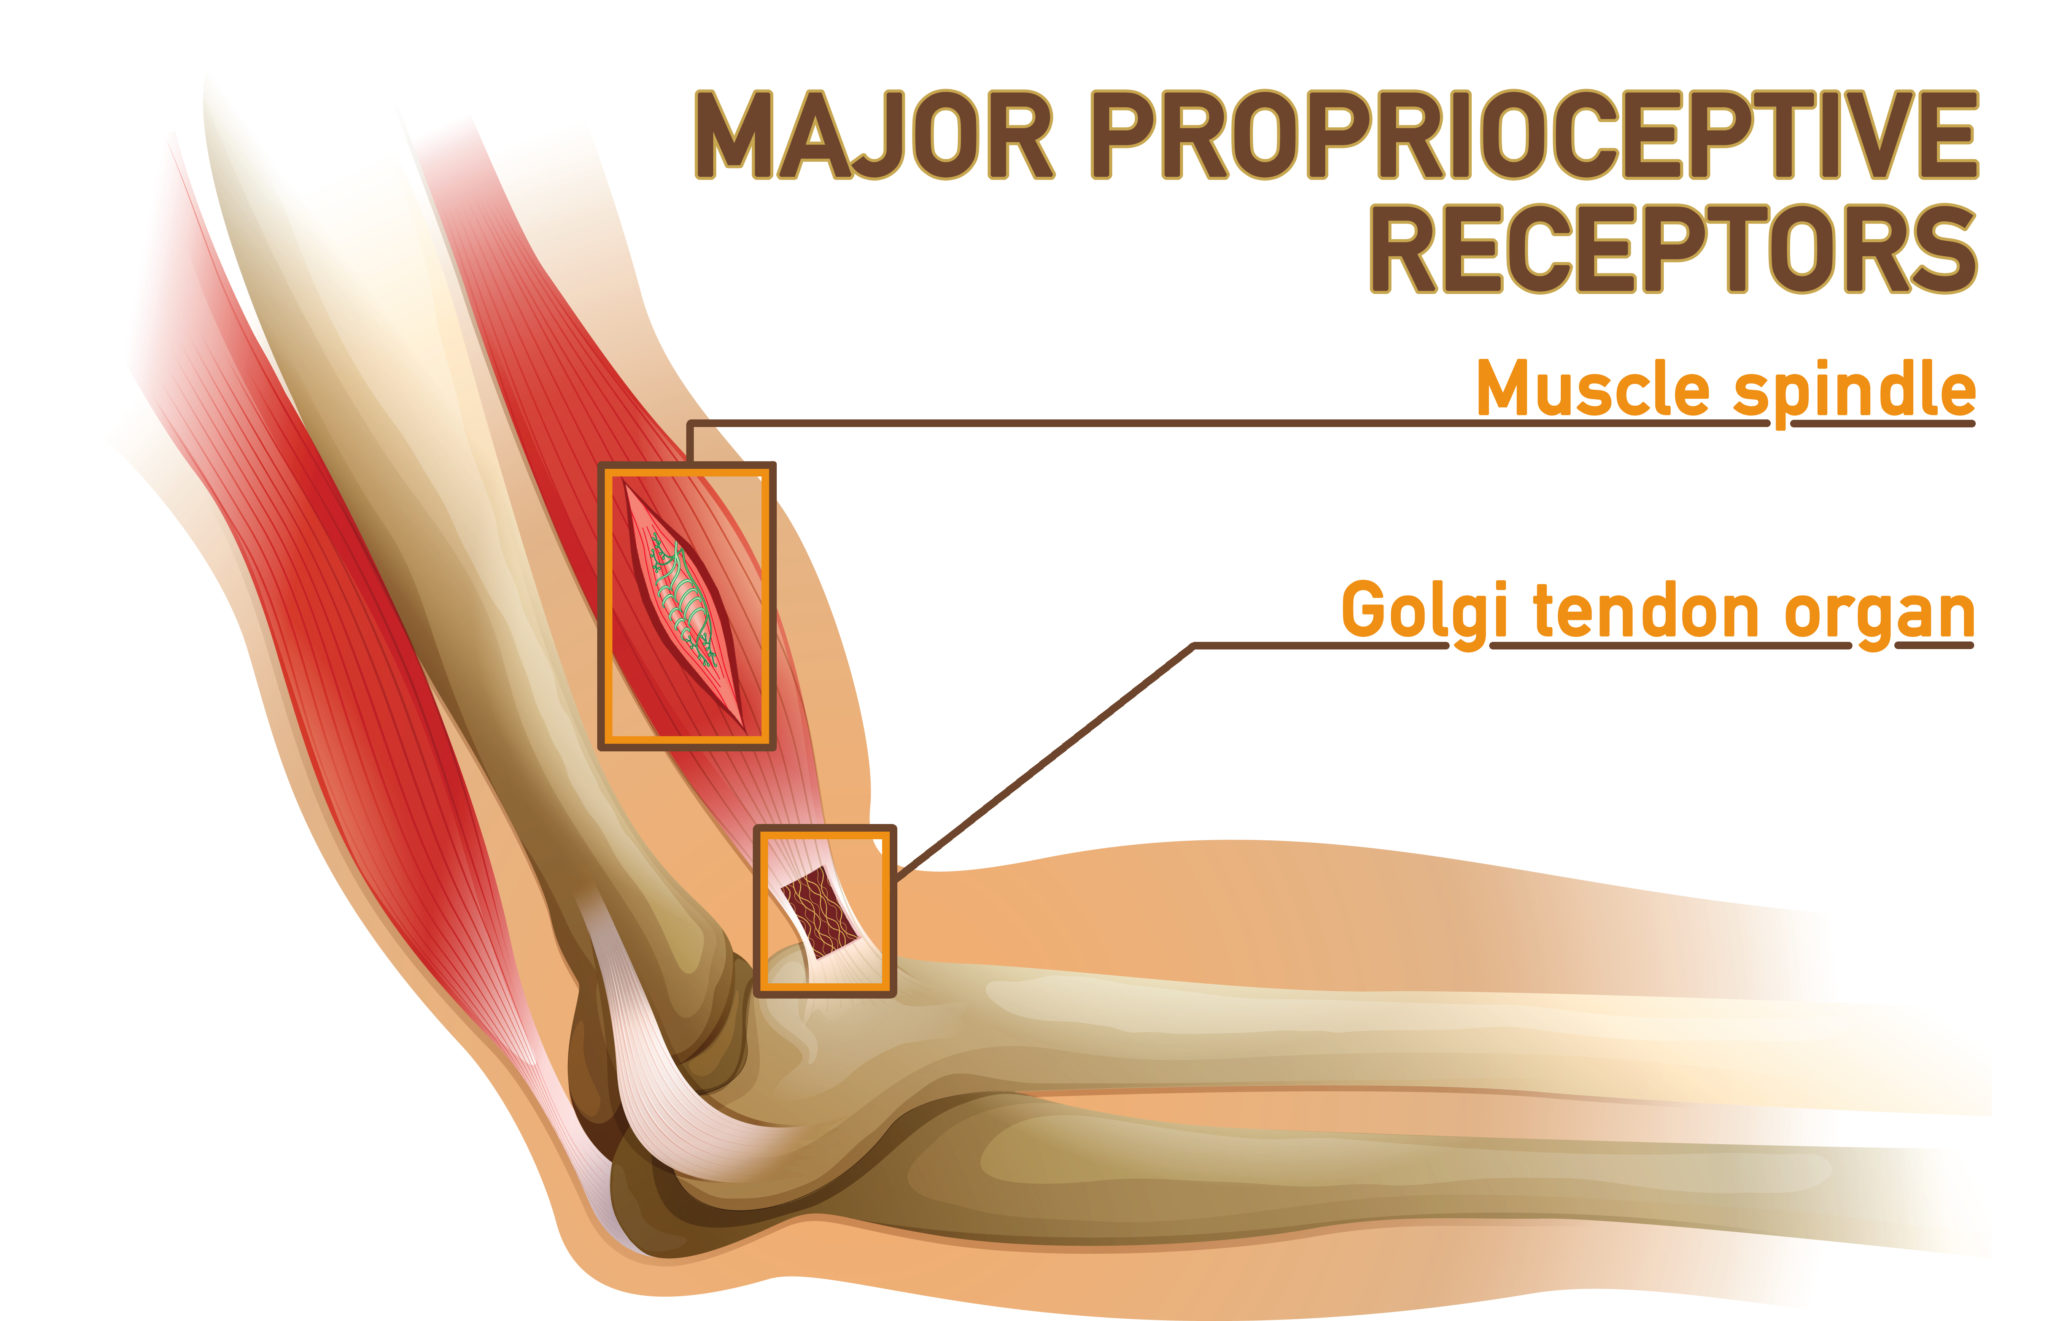 proprioception | receptors | muscle spindle | golgi tendon organ